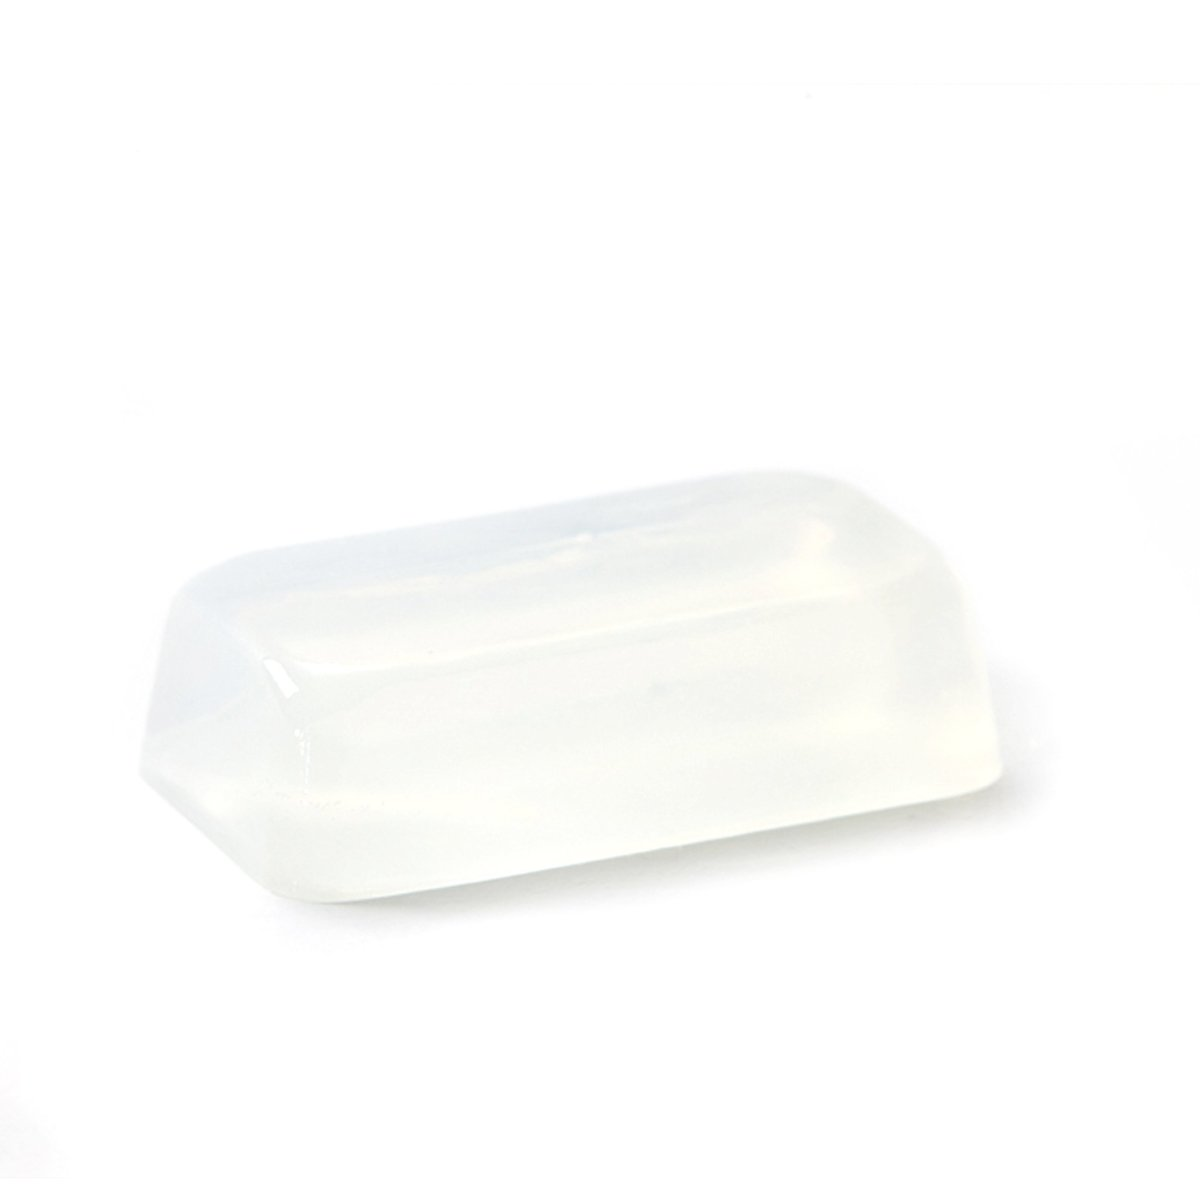 Melt and Pour Soap Base - Clear - SLS FREE - Mystic Moments UK